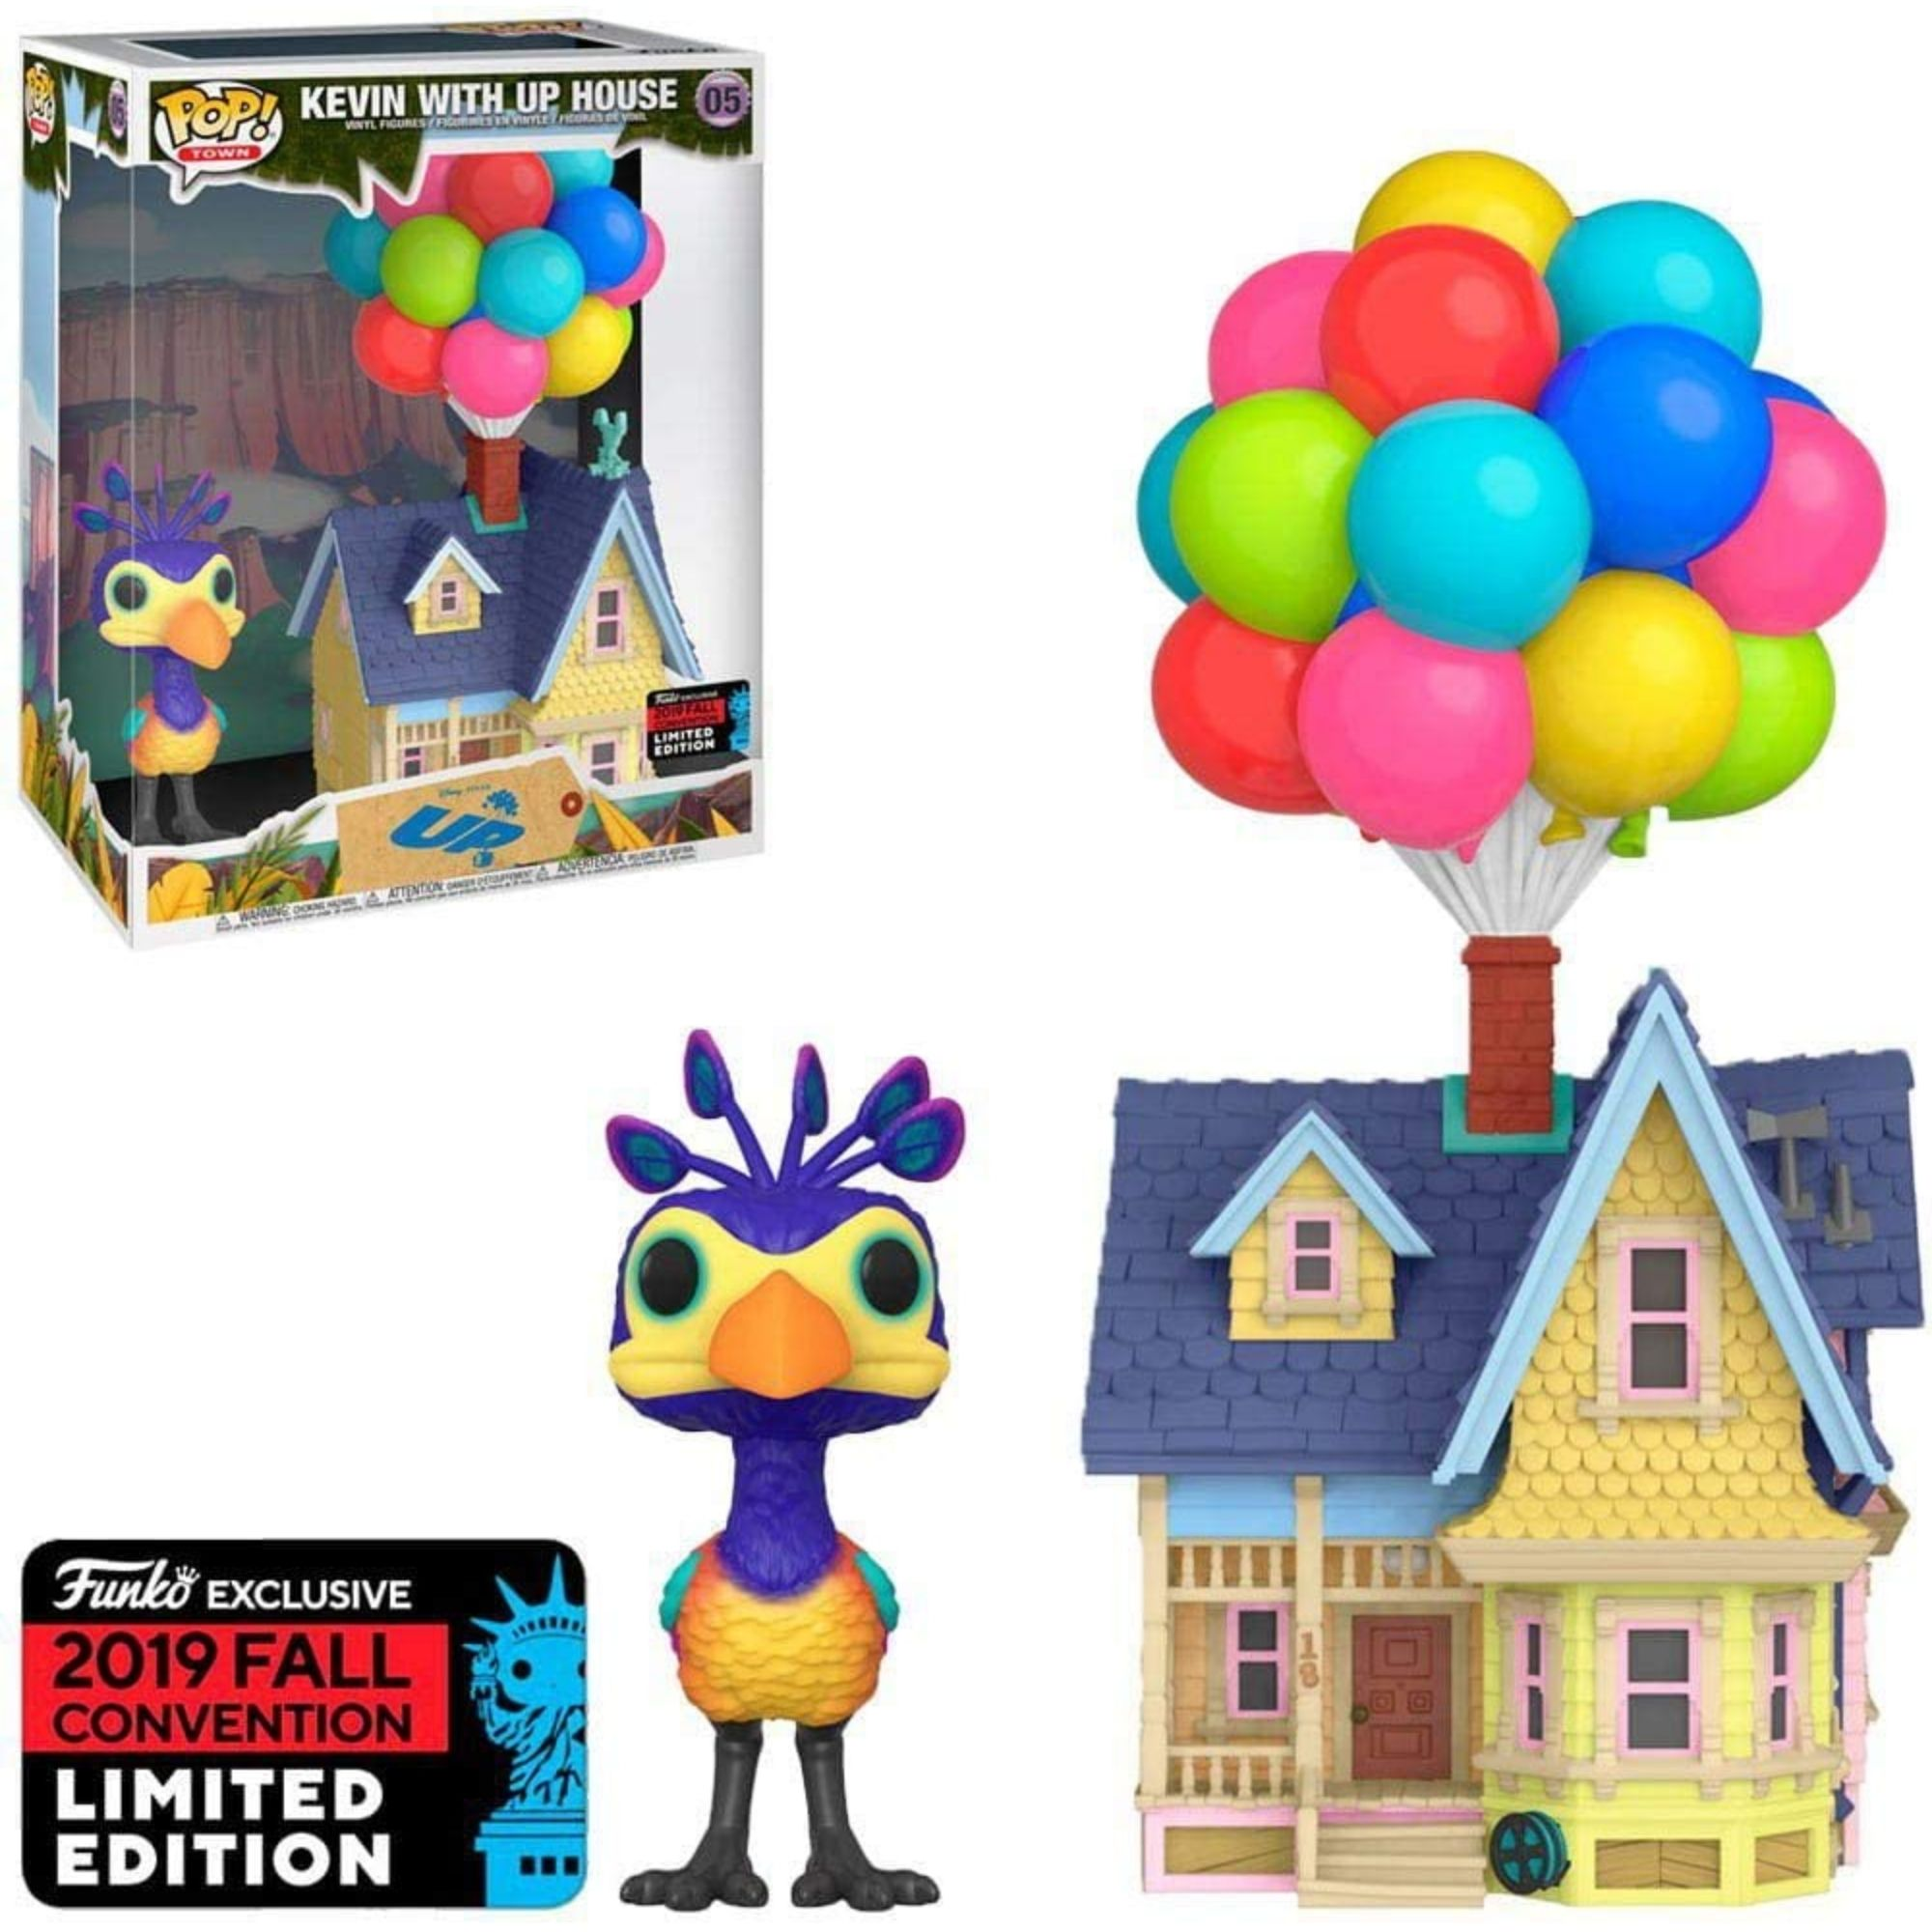 Funko Pop Disney Up with Kevin Up House Nycc 2019 Exclusivo  - Game Land Brinquedos